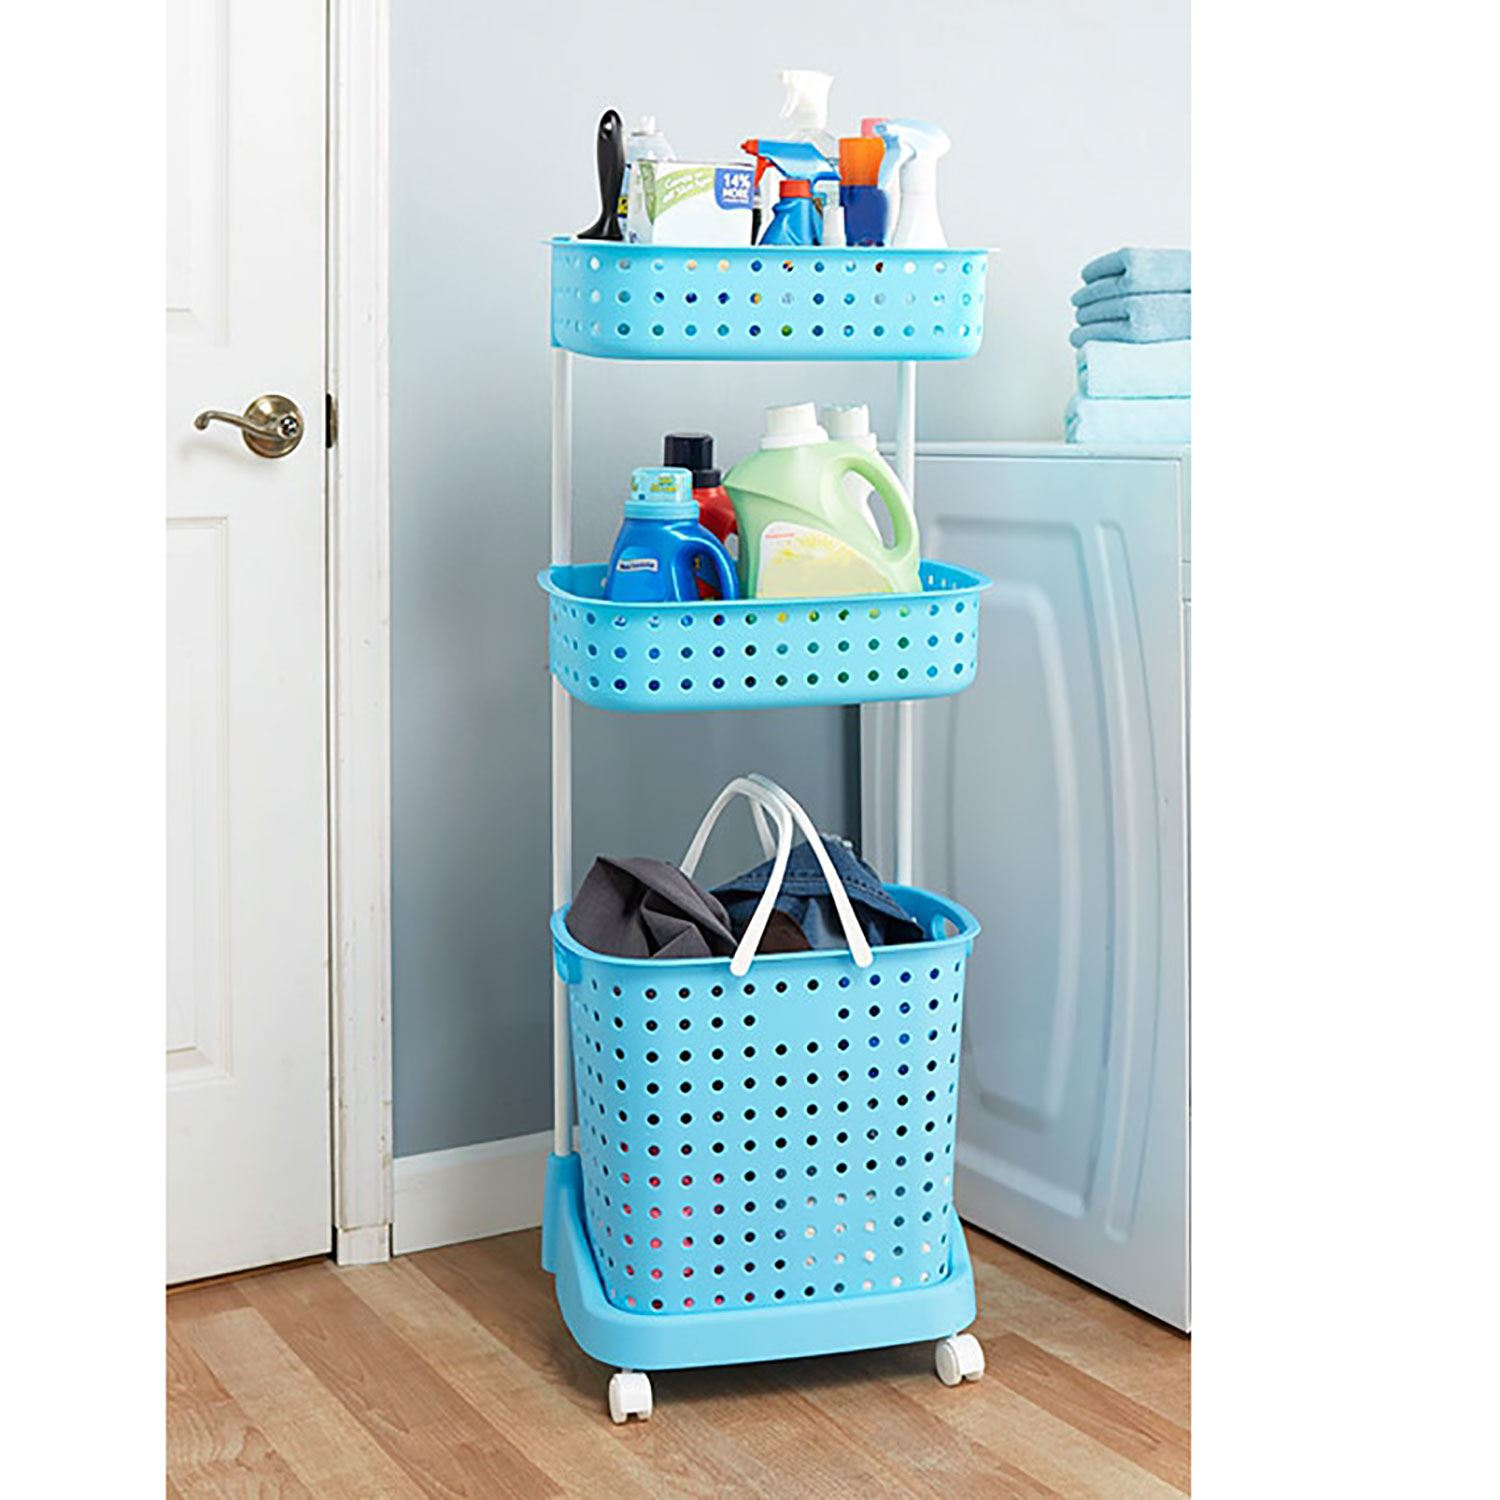 3 Basket Laundry Hamper Blue 3 Tier Rolling Laundry Storage Cart Basket Bin Sorter